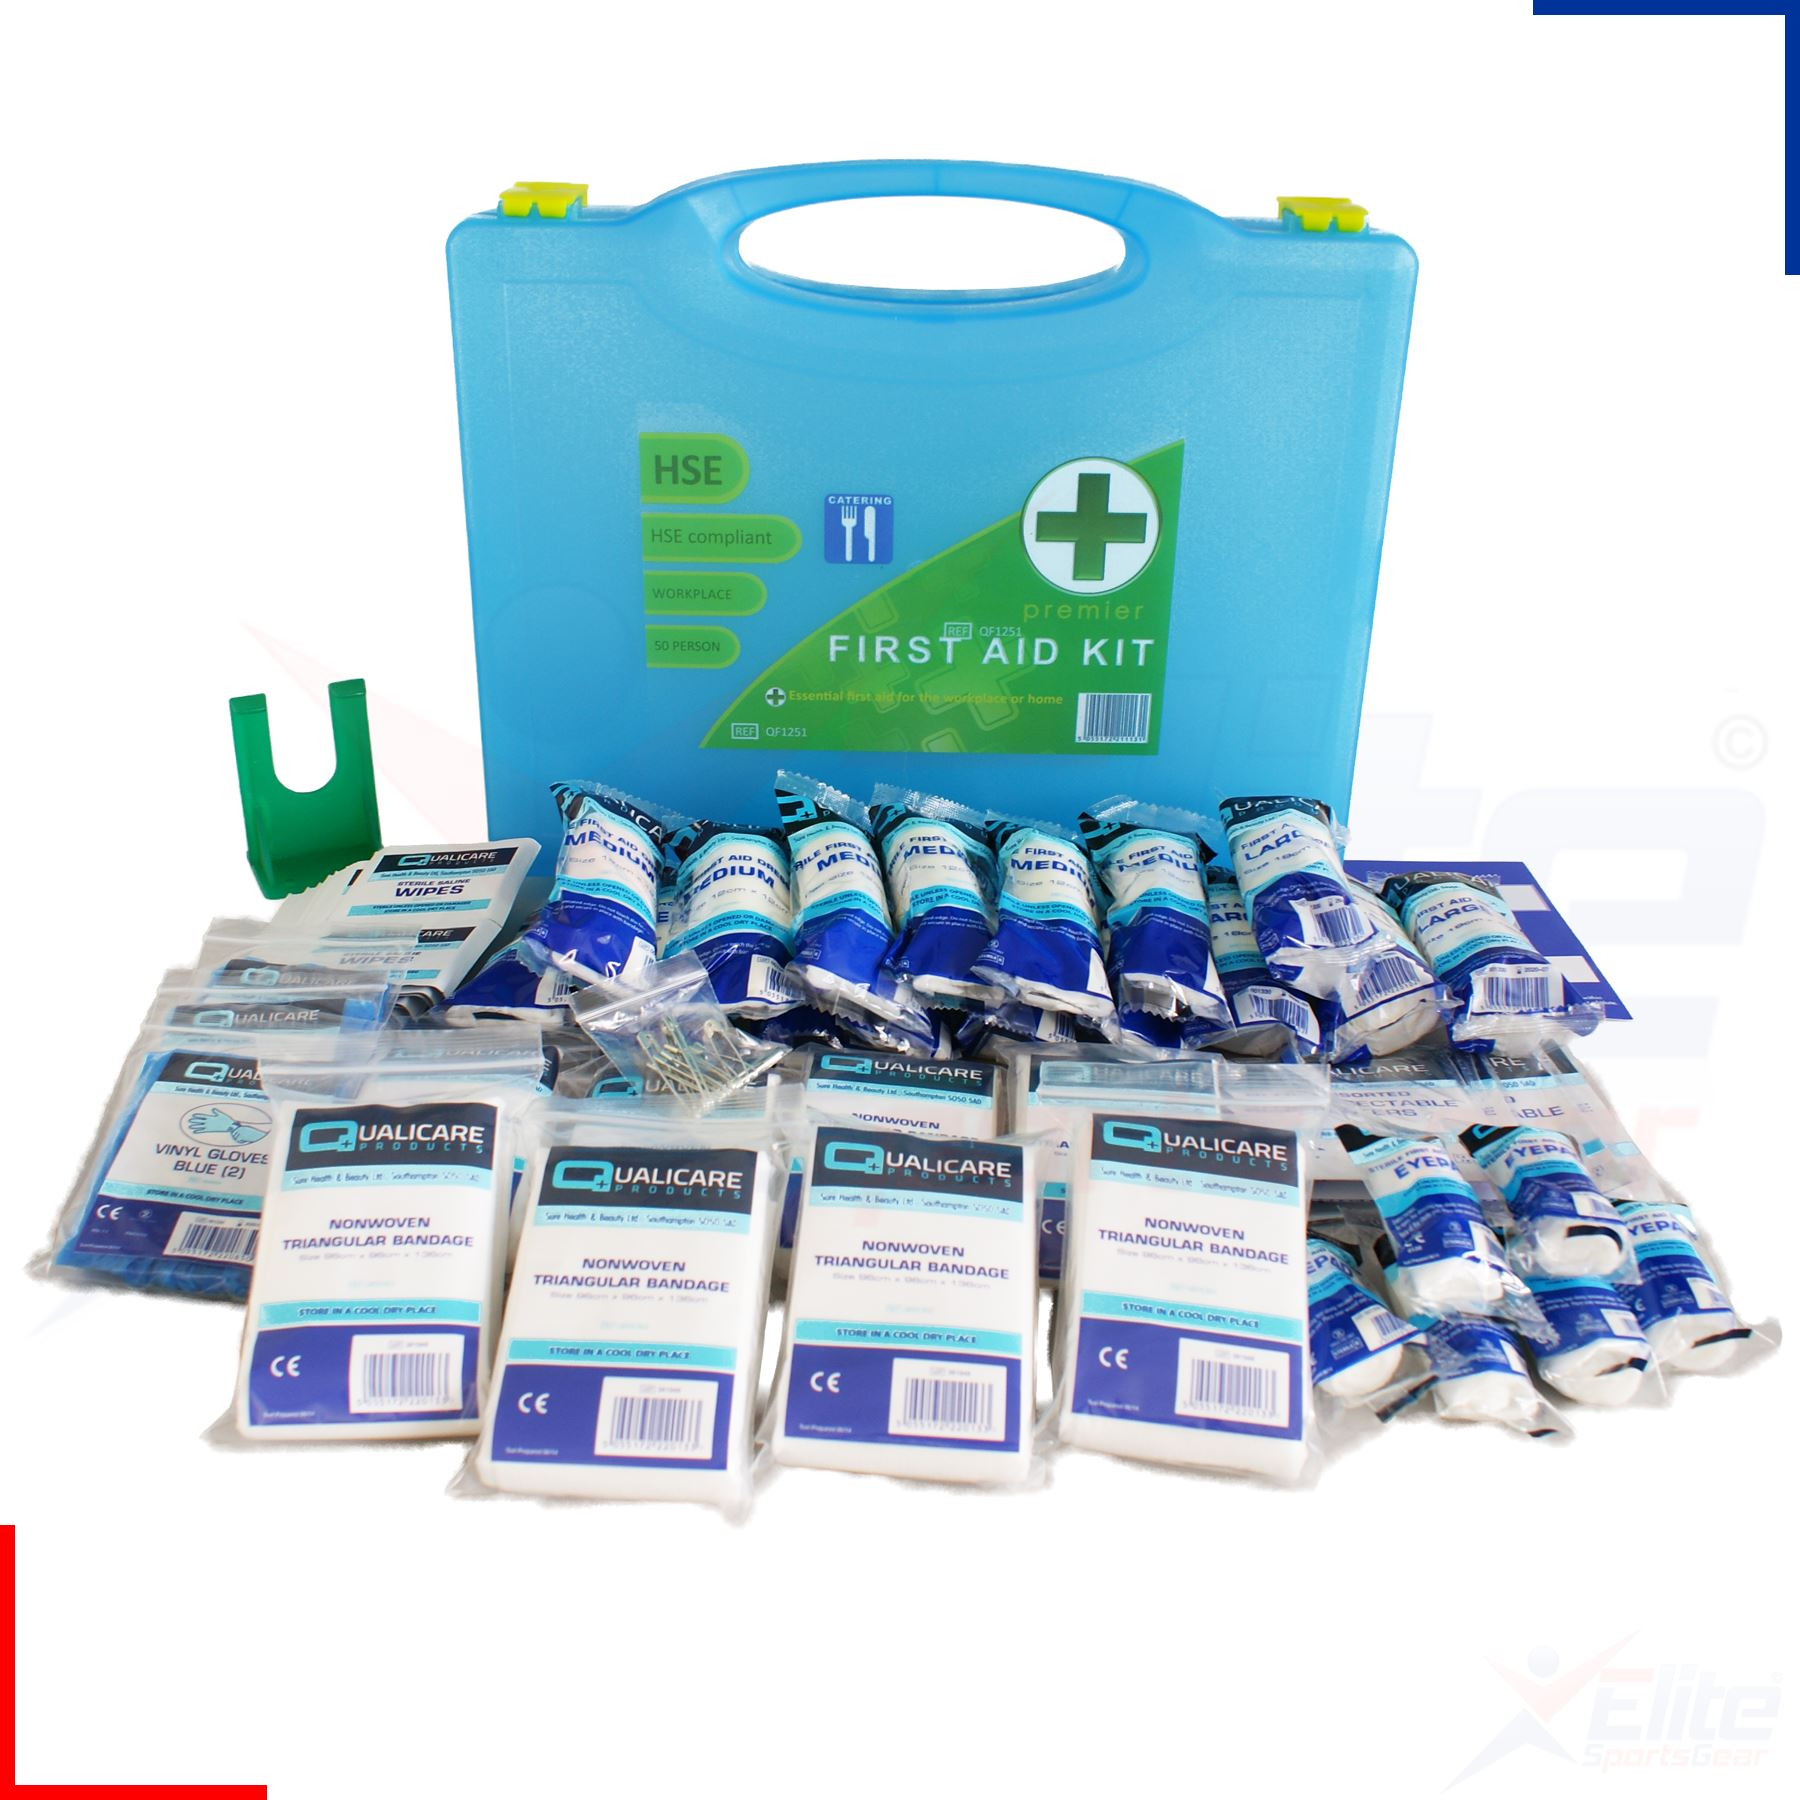 Hse catering first aid kit workplace kitchen medical for First aid kits for restaurant kitchens